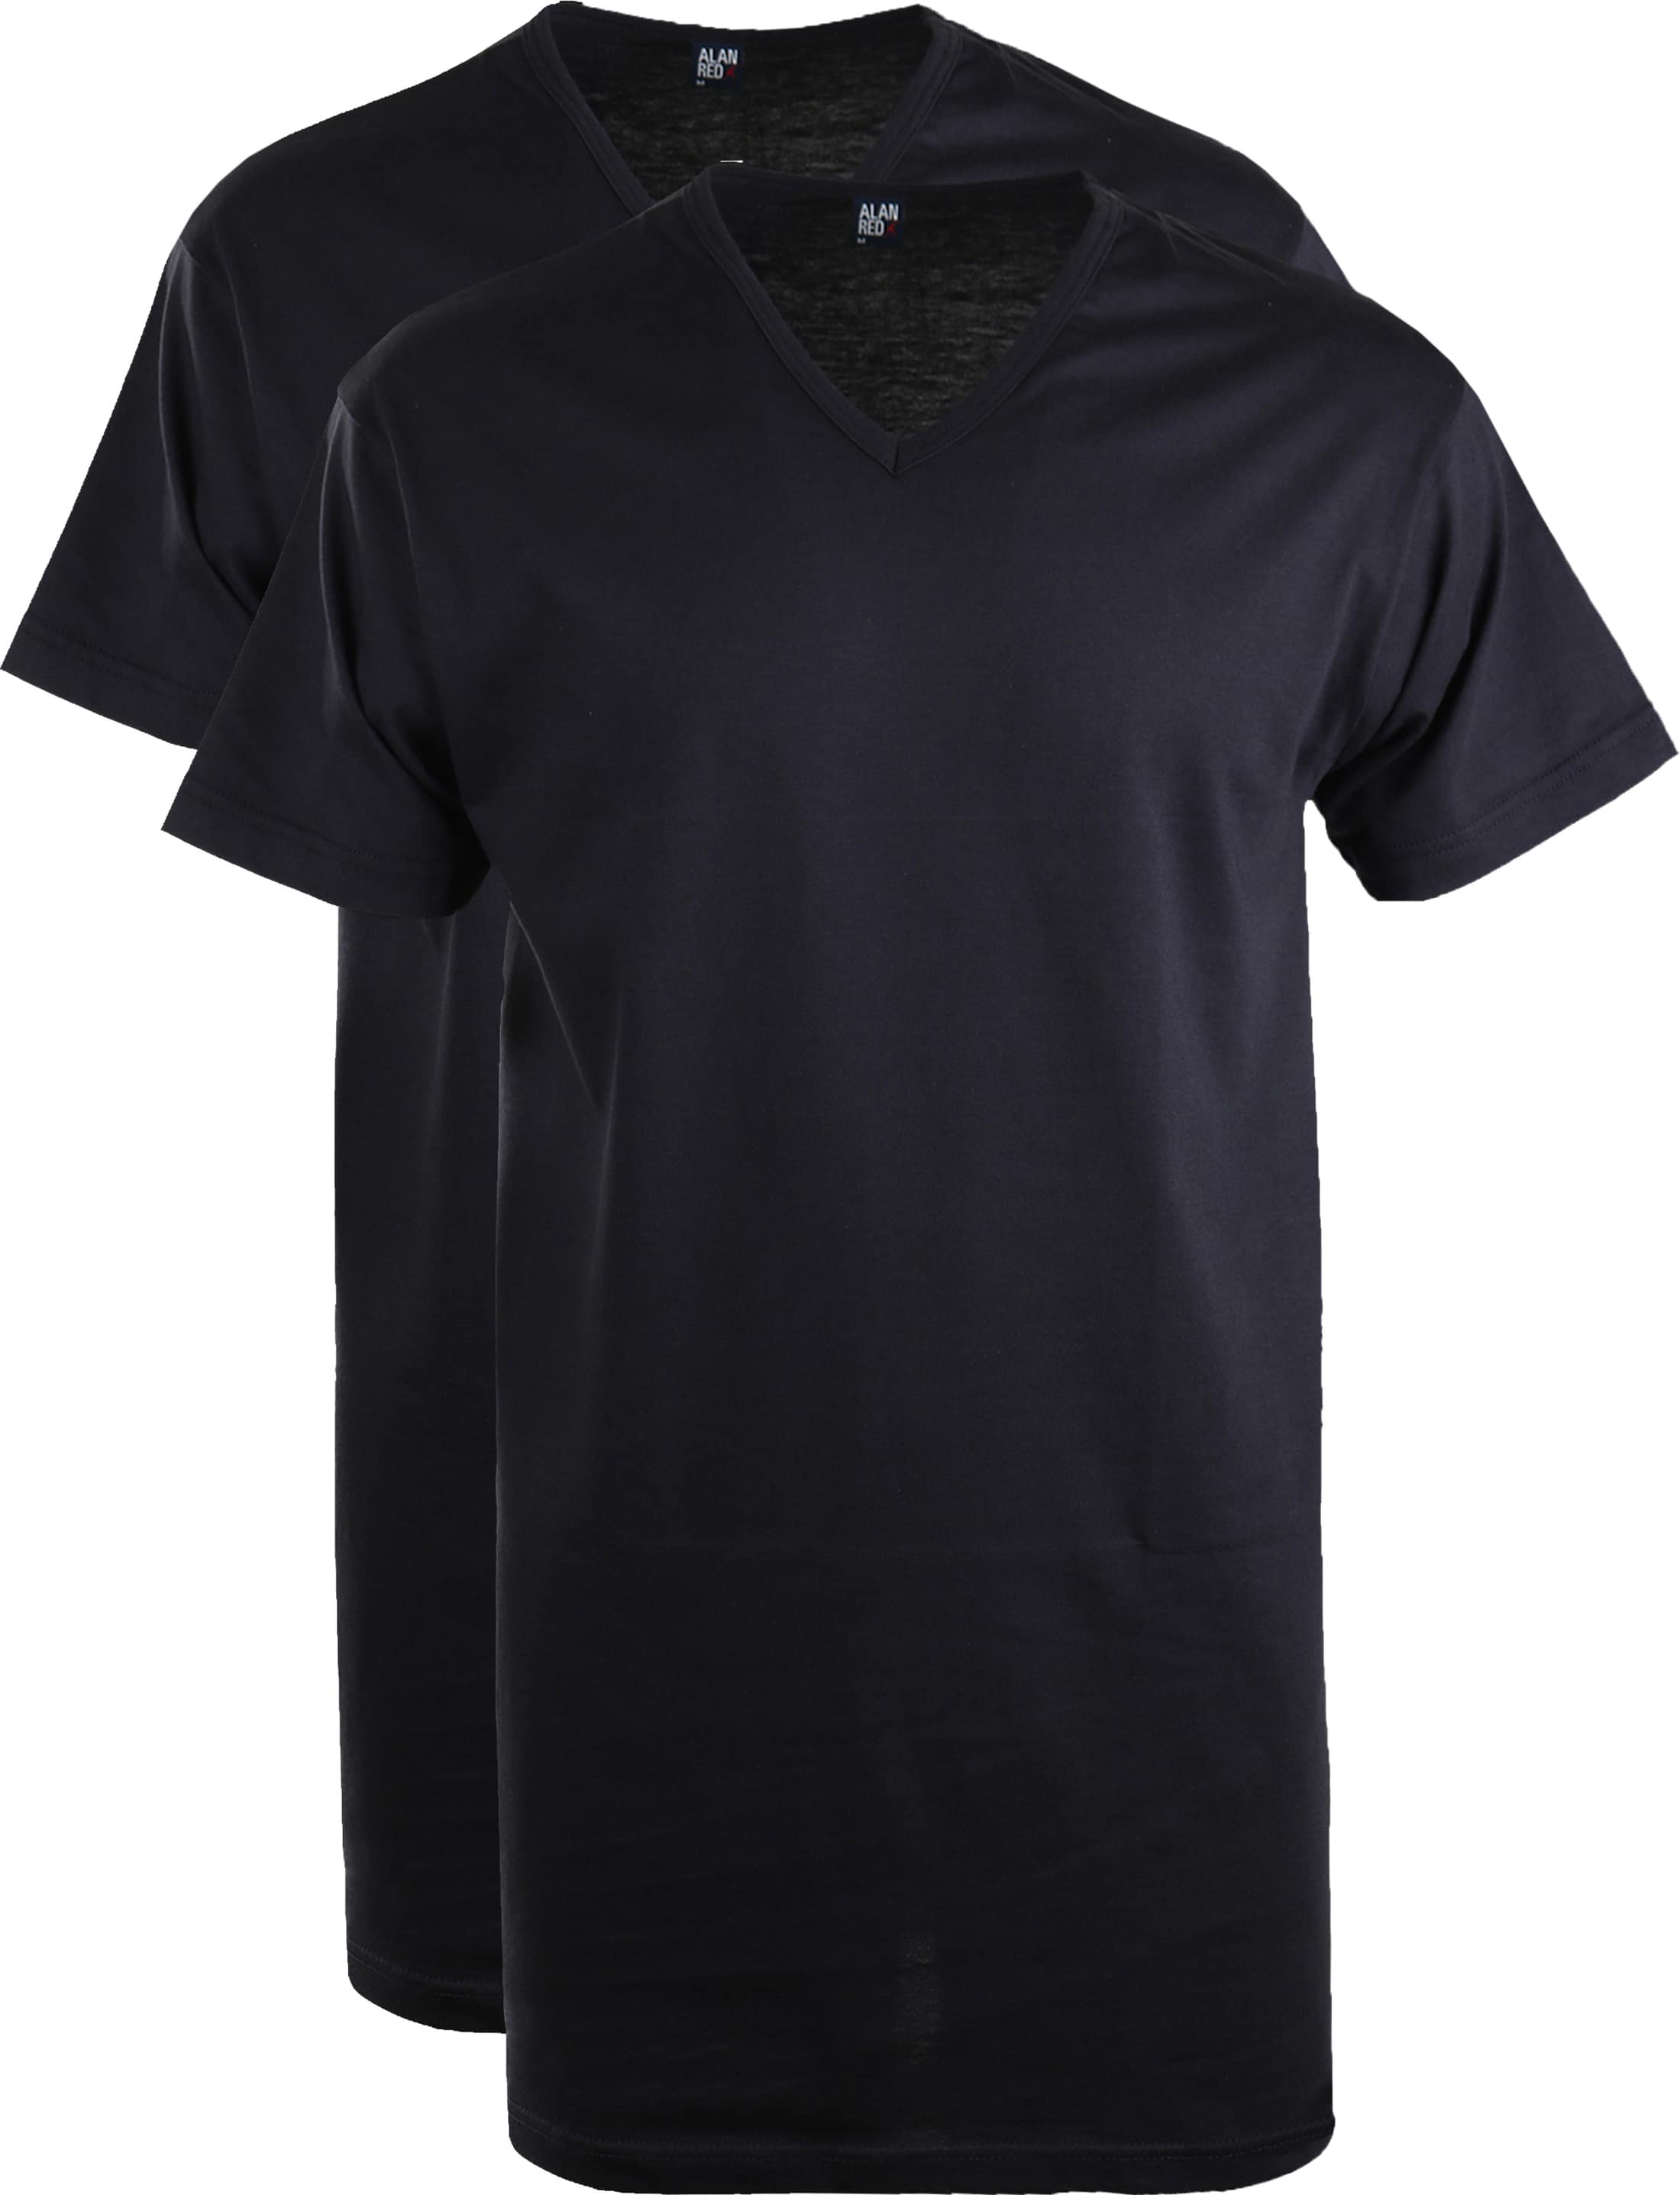 Alan Red Vermont Extra Lange T-Shirts Navy (2Pack) foto 0